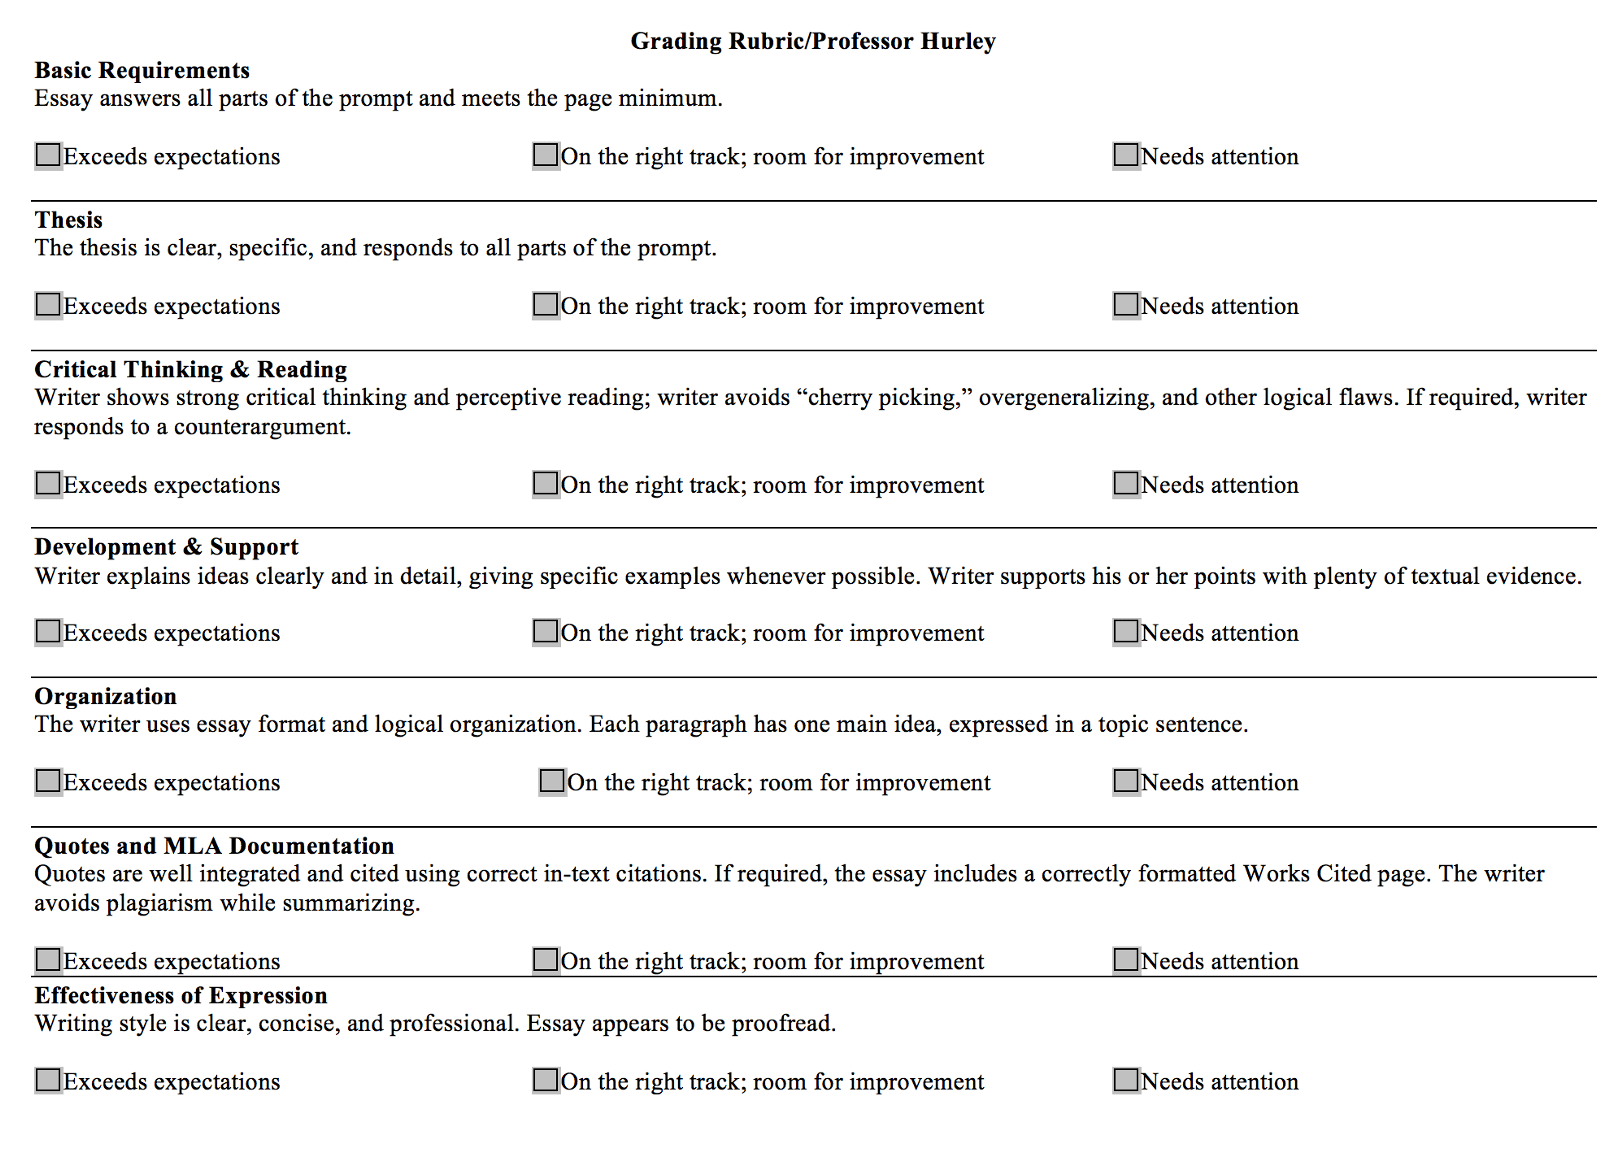 Grading Rubric For Essays In College